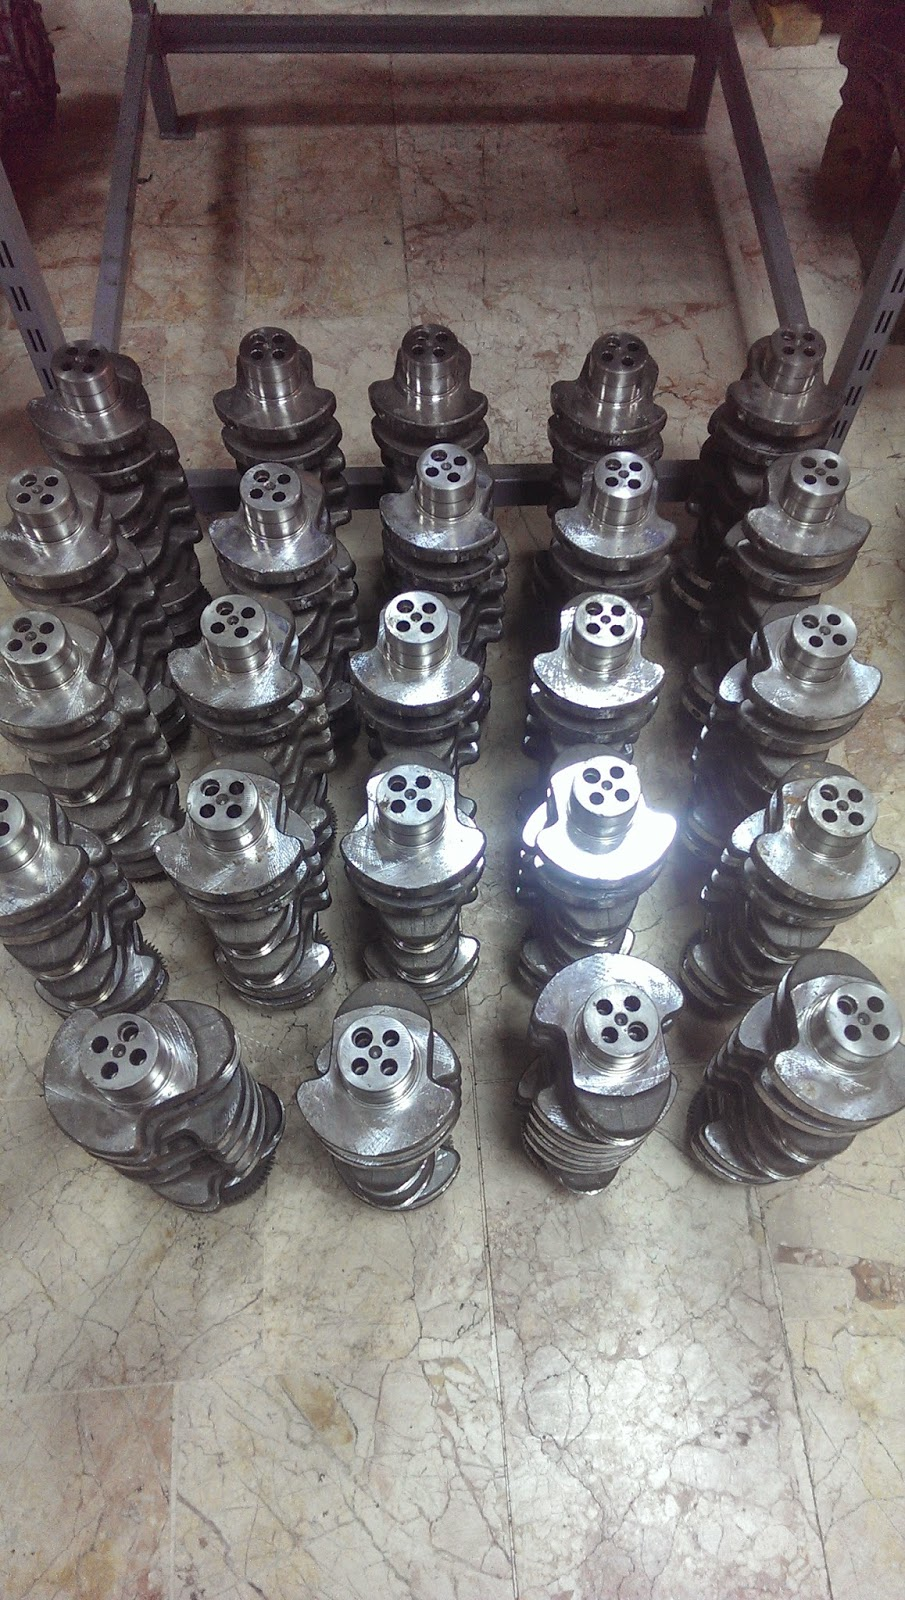 ONAT auto ,spare parts ,motor ,,wholesale .BARTER is